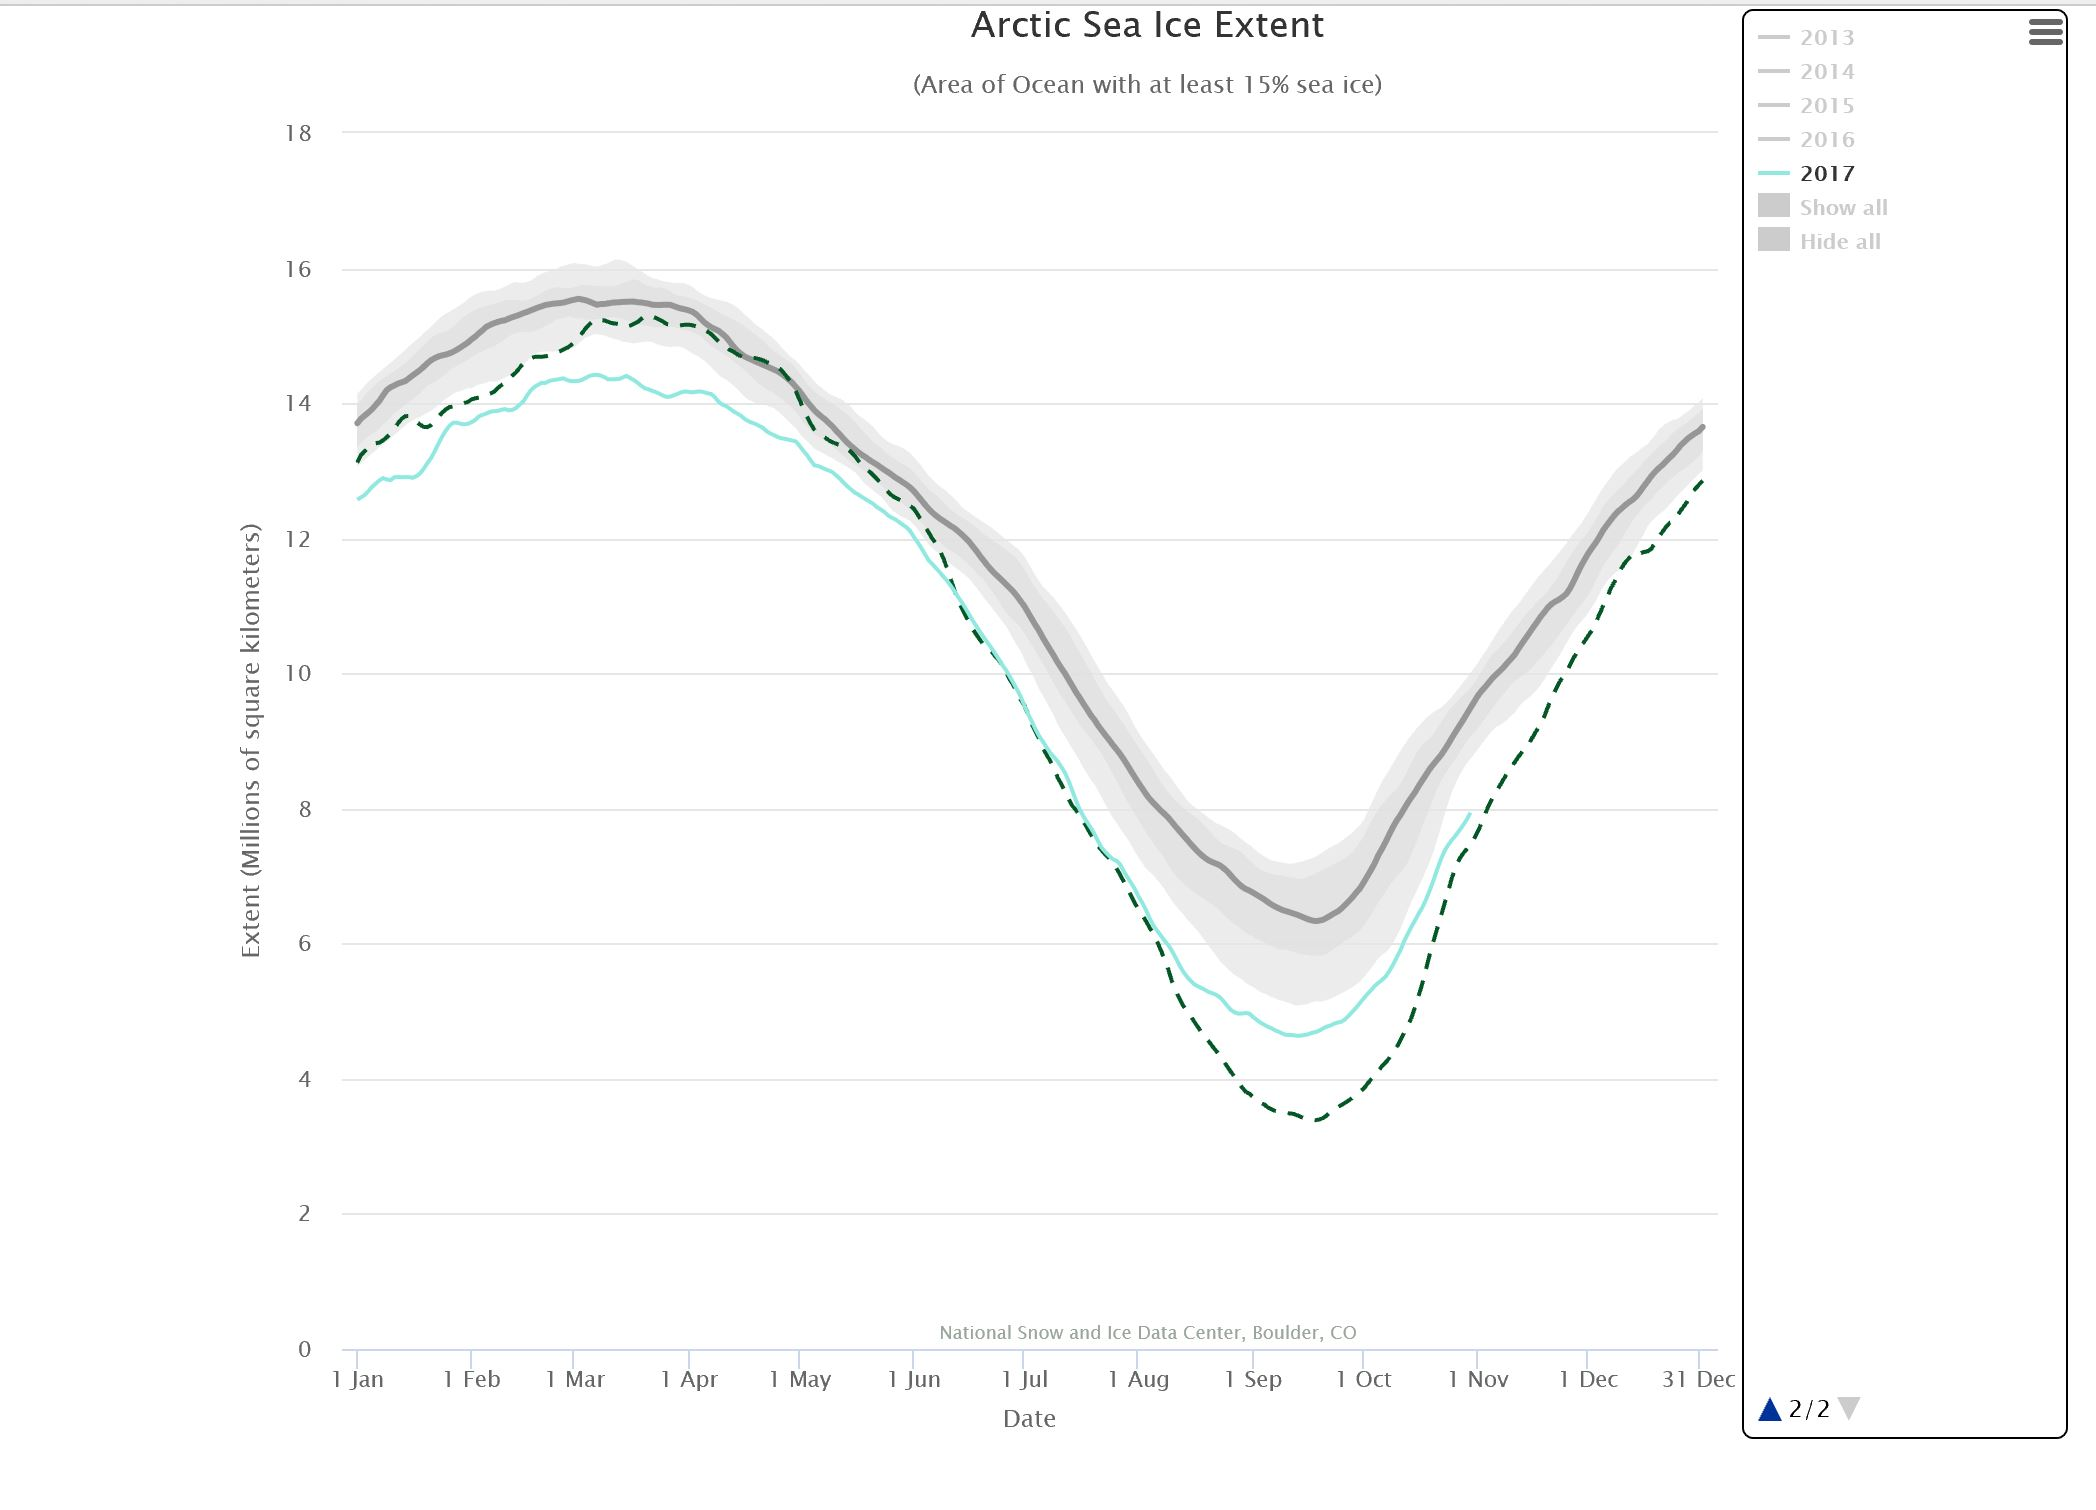 arctic sea ice extent nsdic 2017